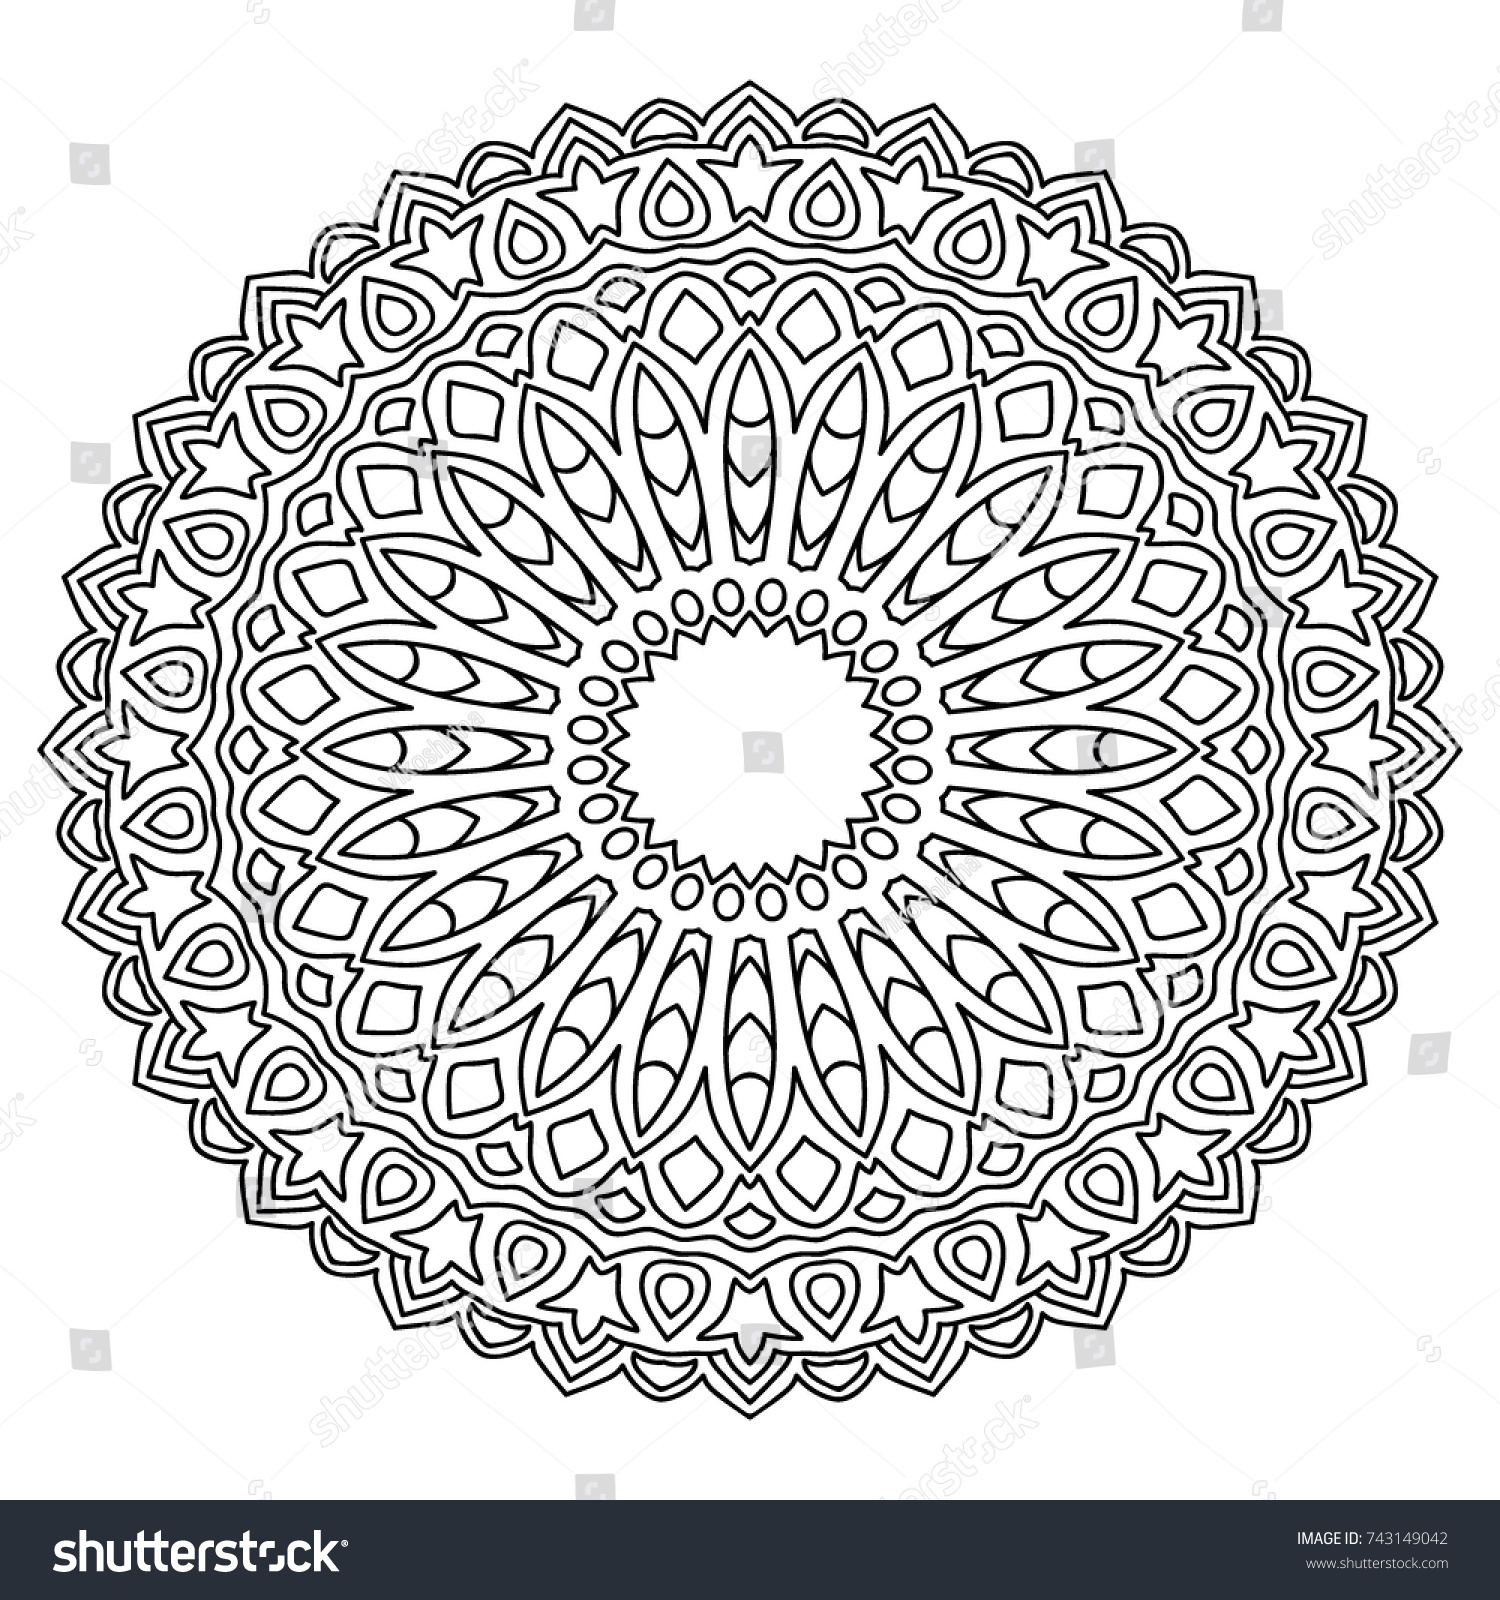 Delicate Snowflake Adult Coloring Book Page Stock Vector 743149042 ...